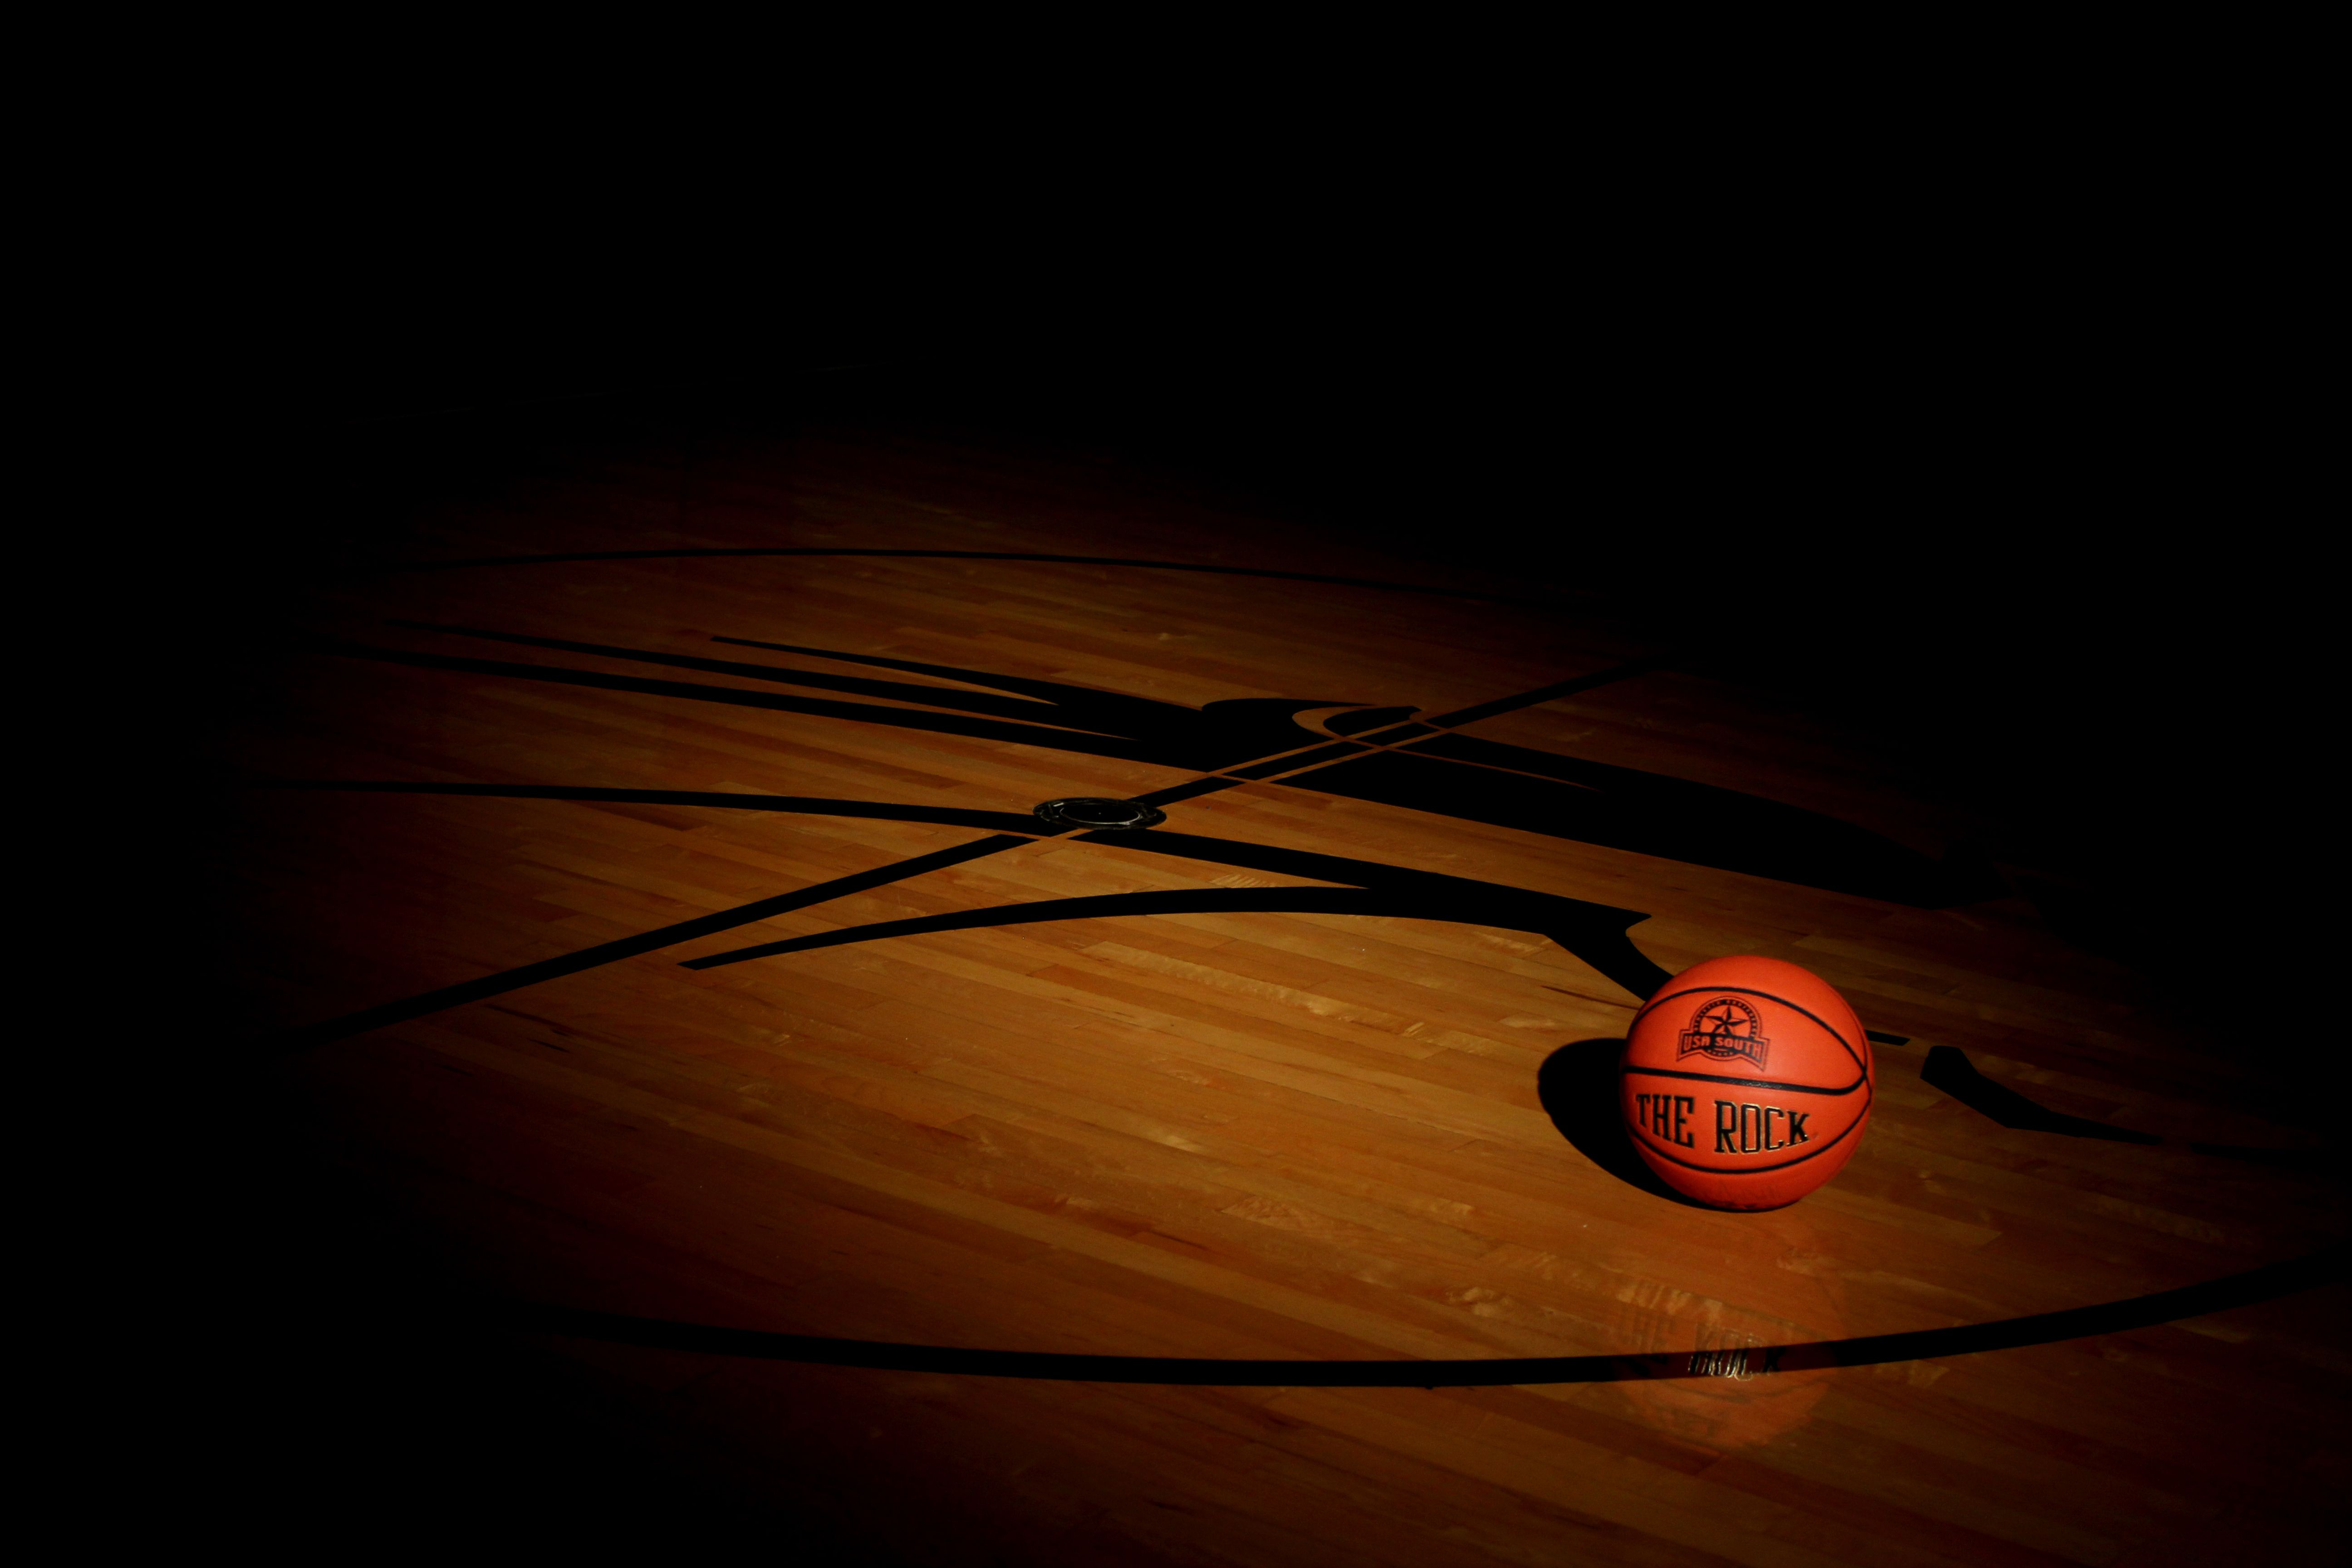 Hd Basketball Court Wallpapers Mobile With Hd Wallpaper 5184x3456